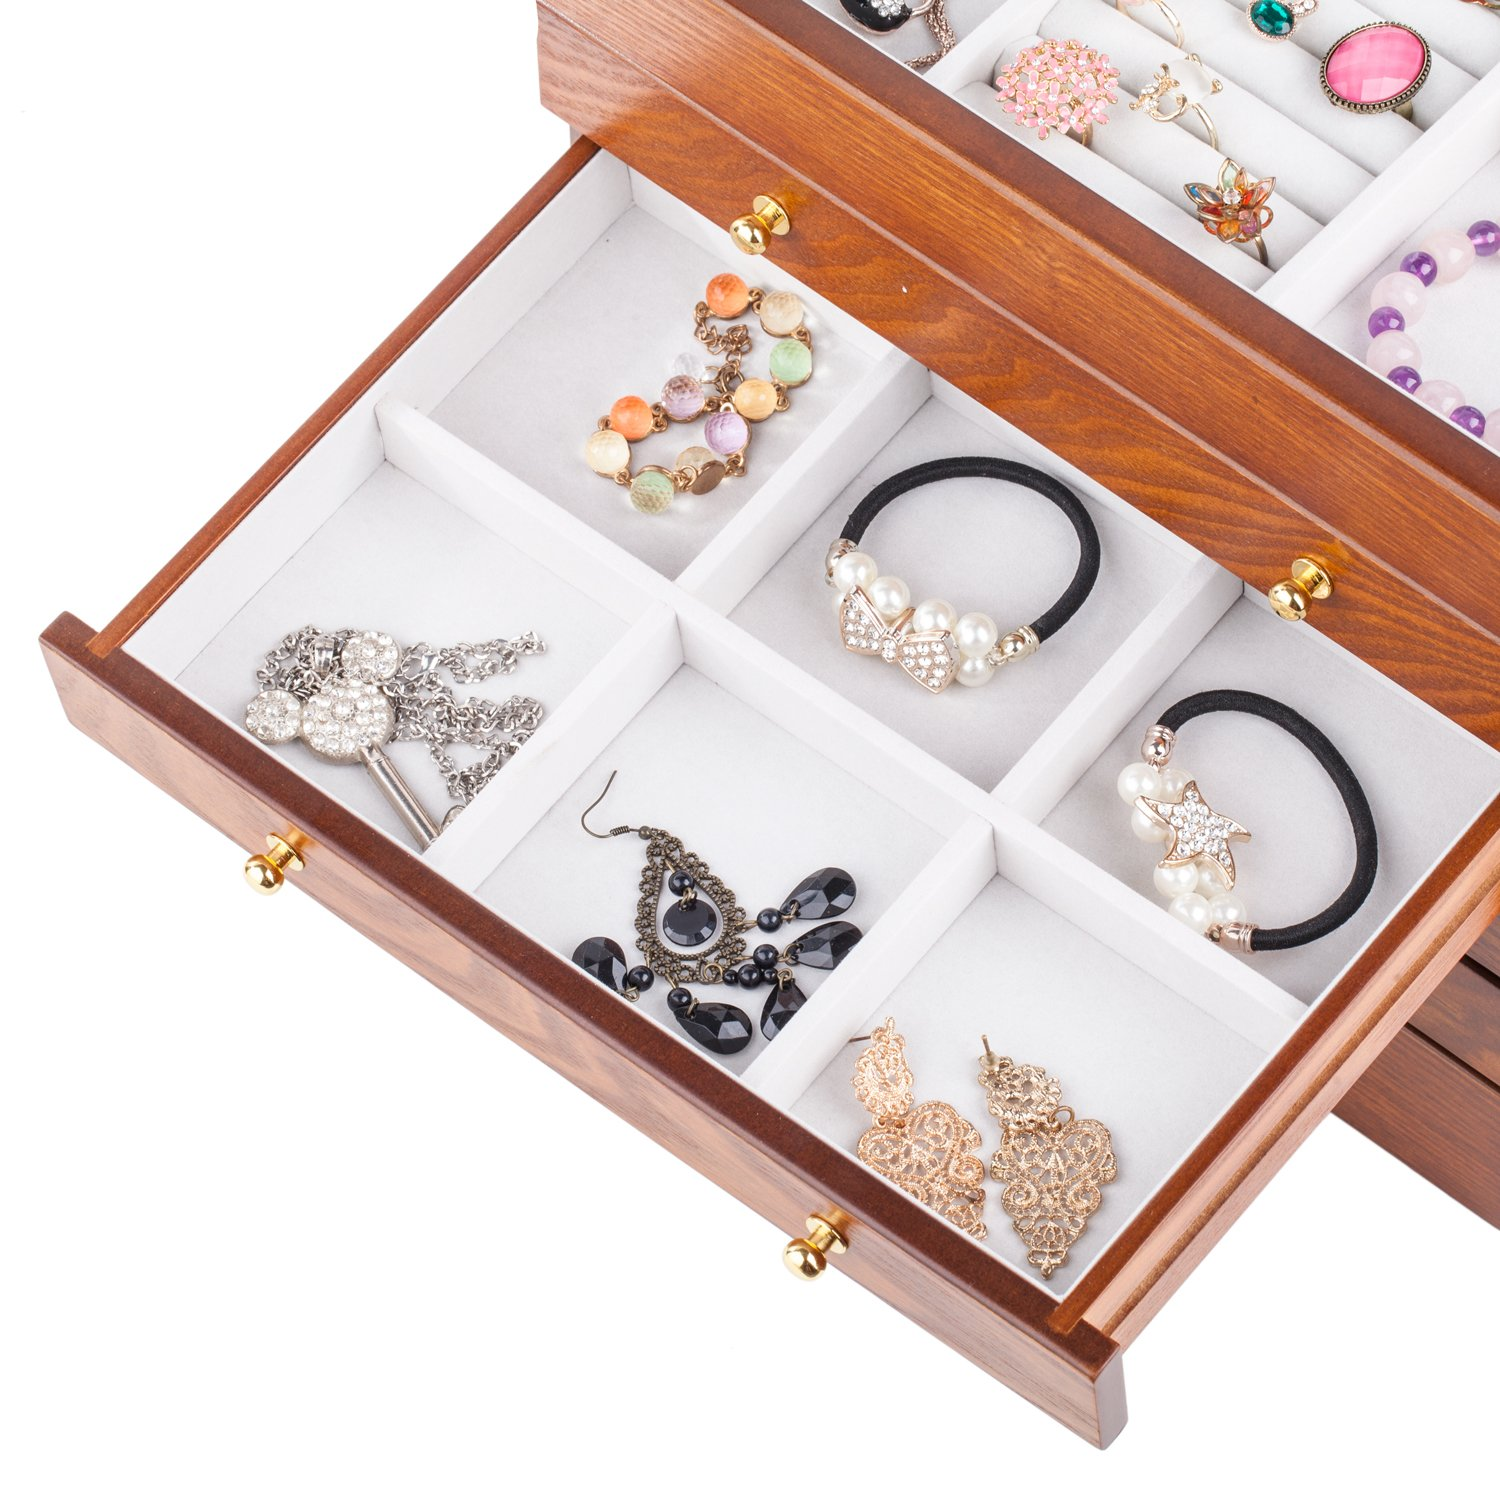 Rowling Extra Large Wooden Jewelry Box/Jewelry Armoire Ring Necklacel Gift Storage Box Organizer by Rowling (Image #6)